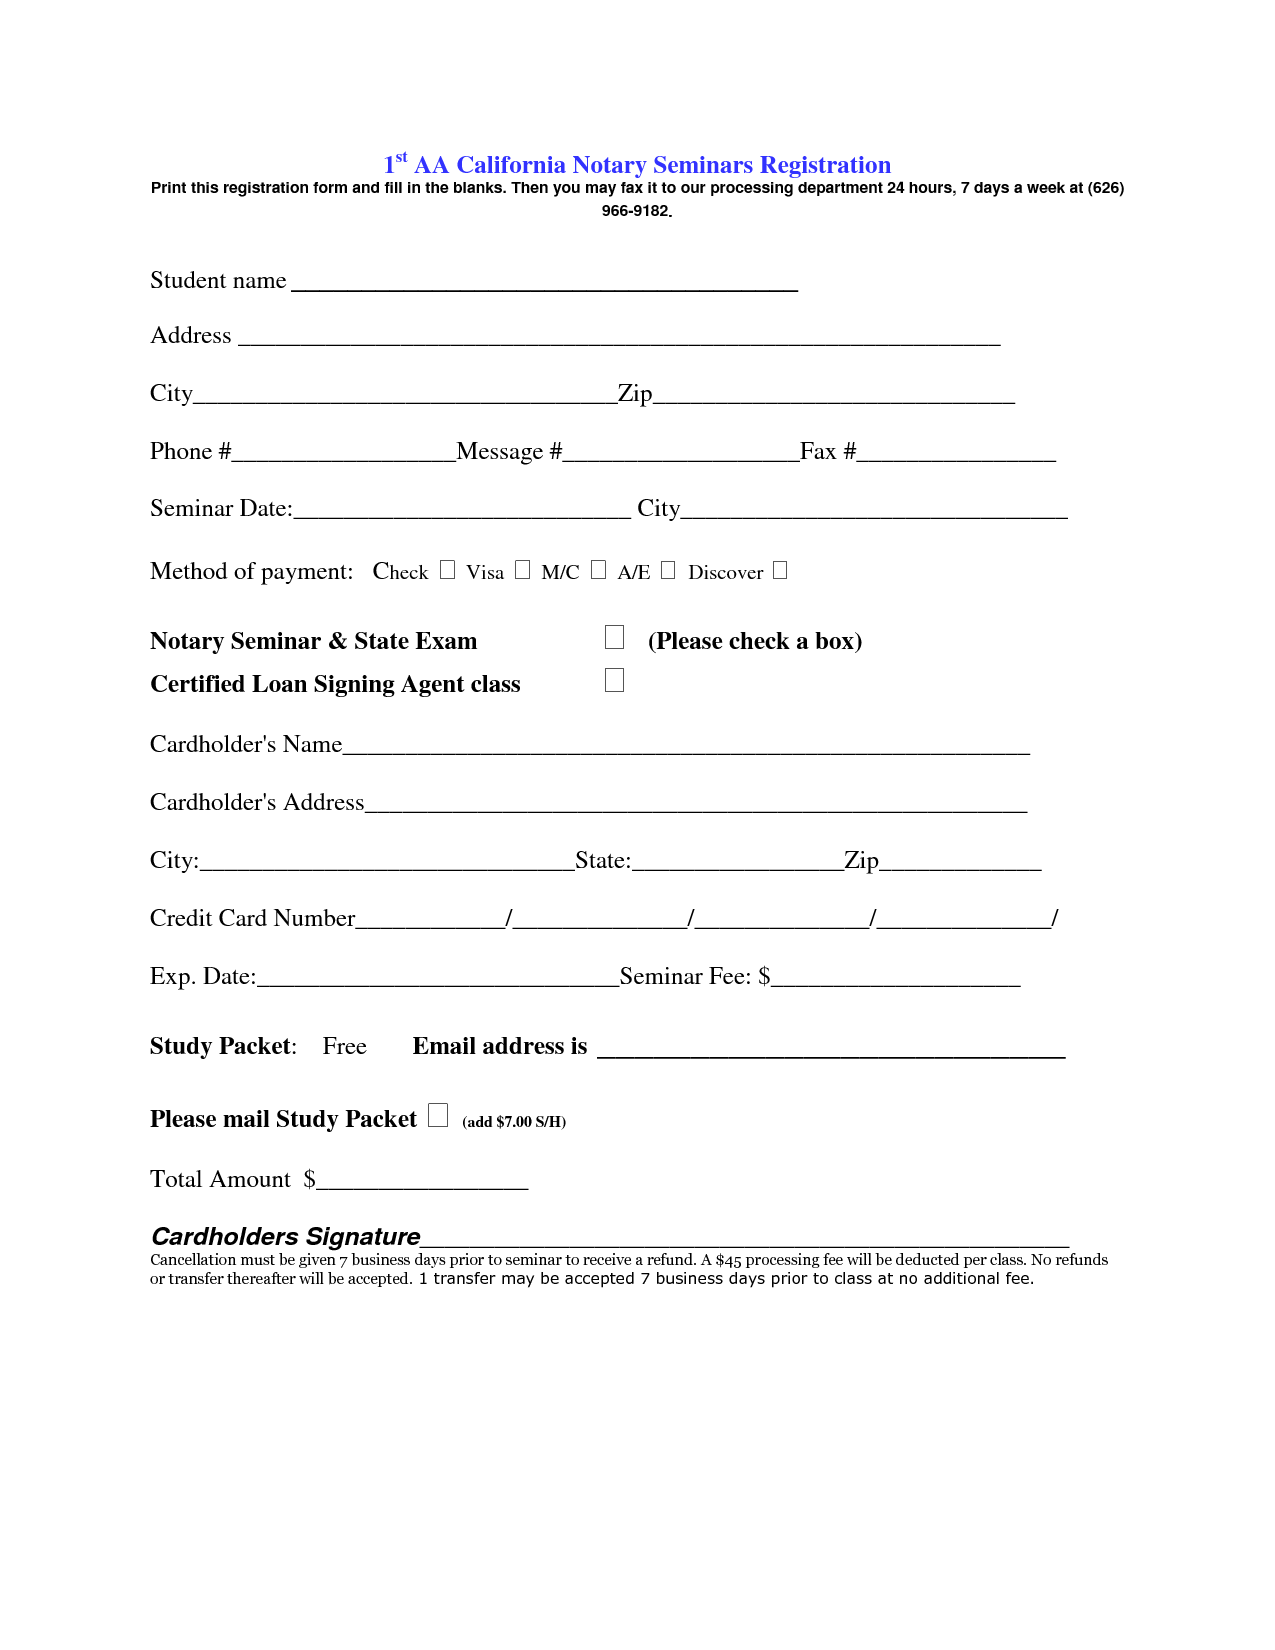 Online Registration Form Template